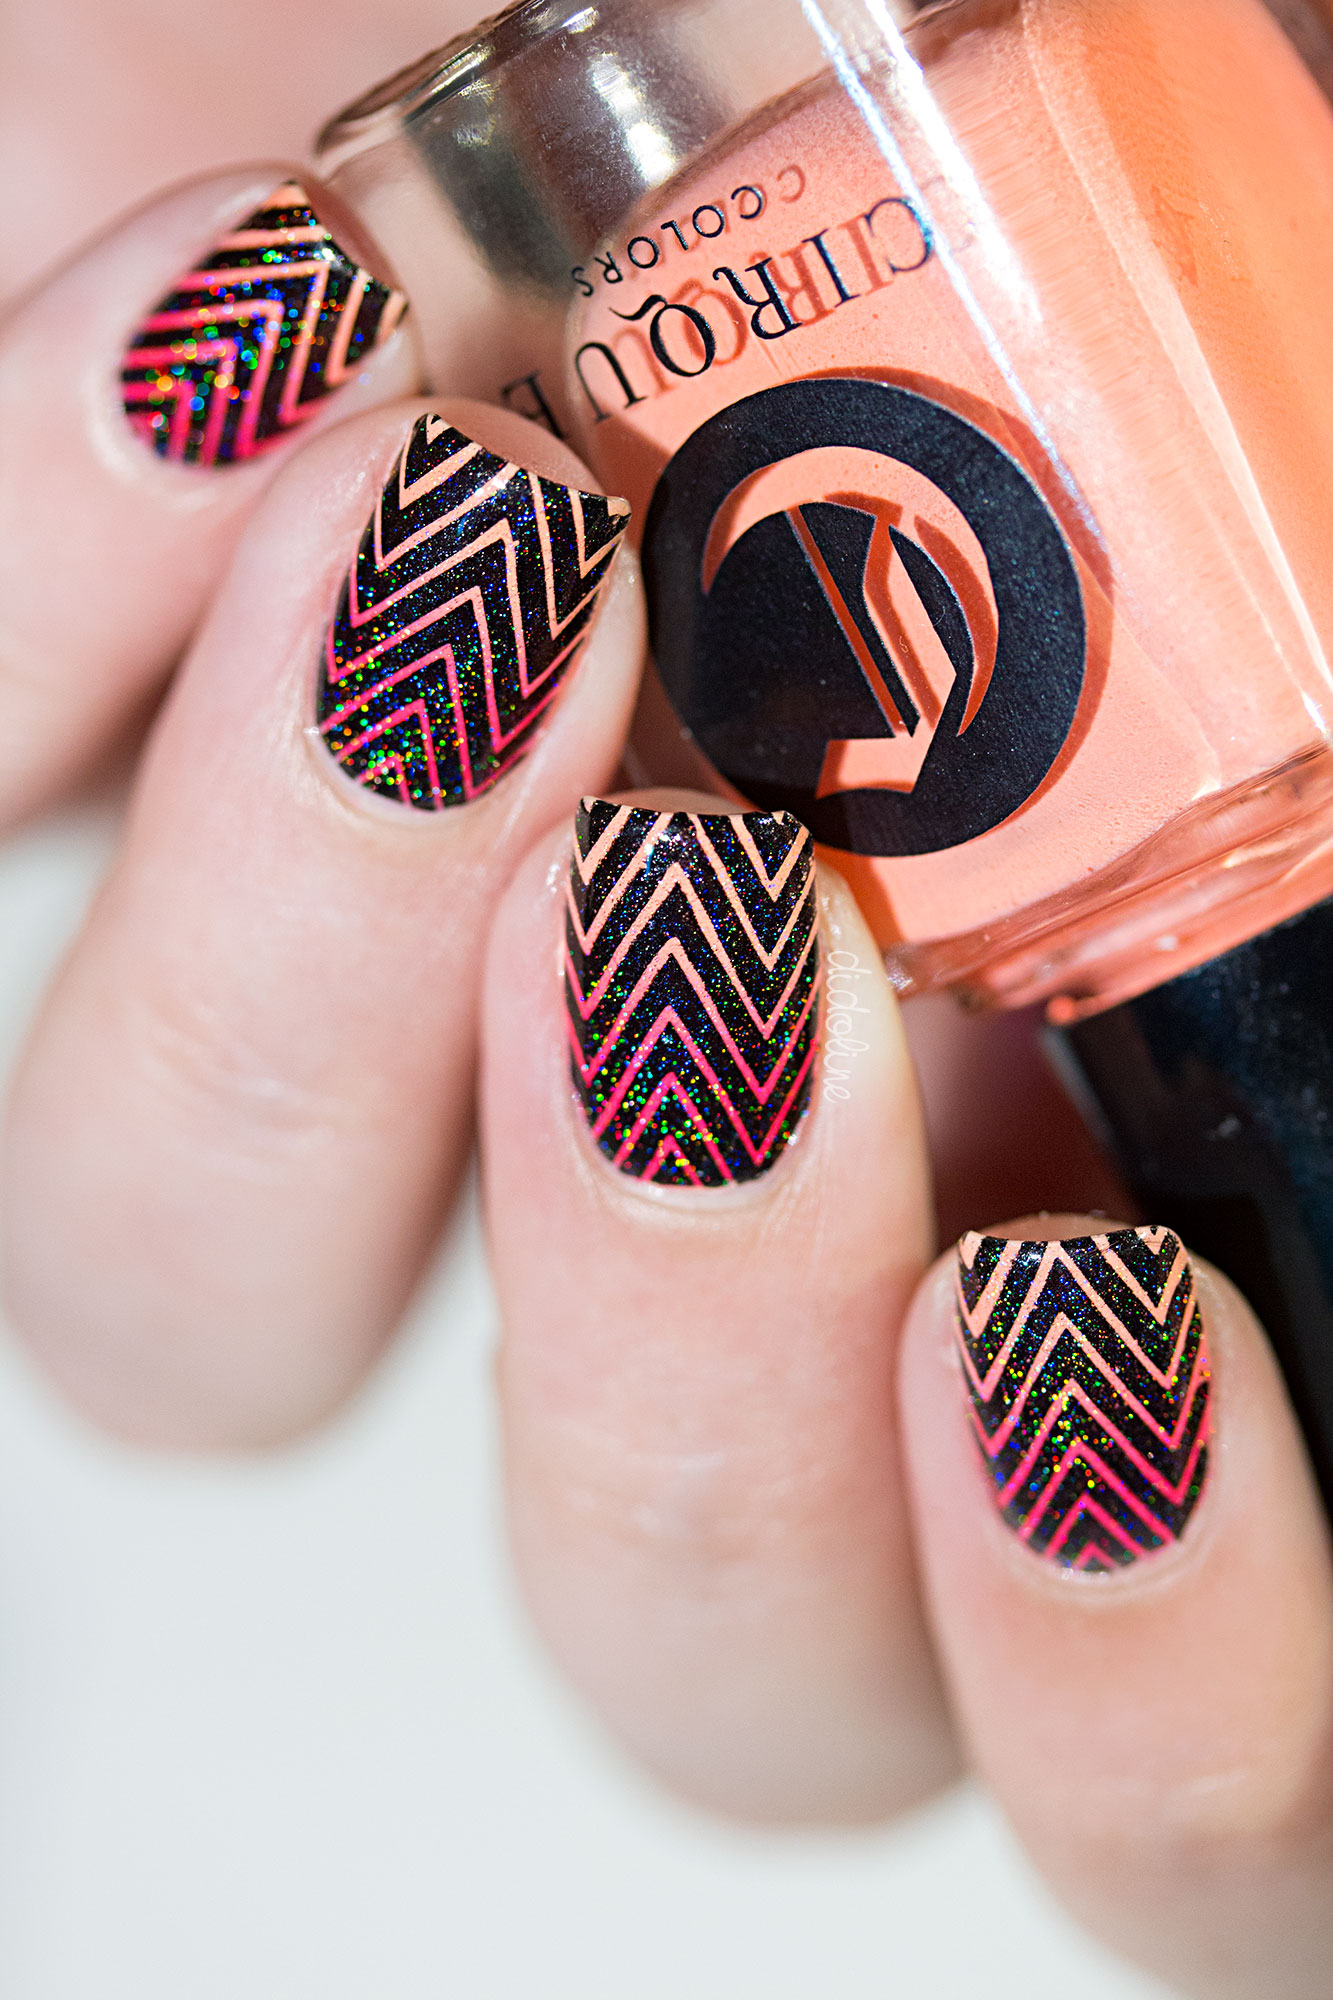 Cirque-Gradient-Stamping-12